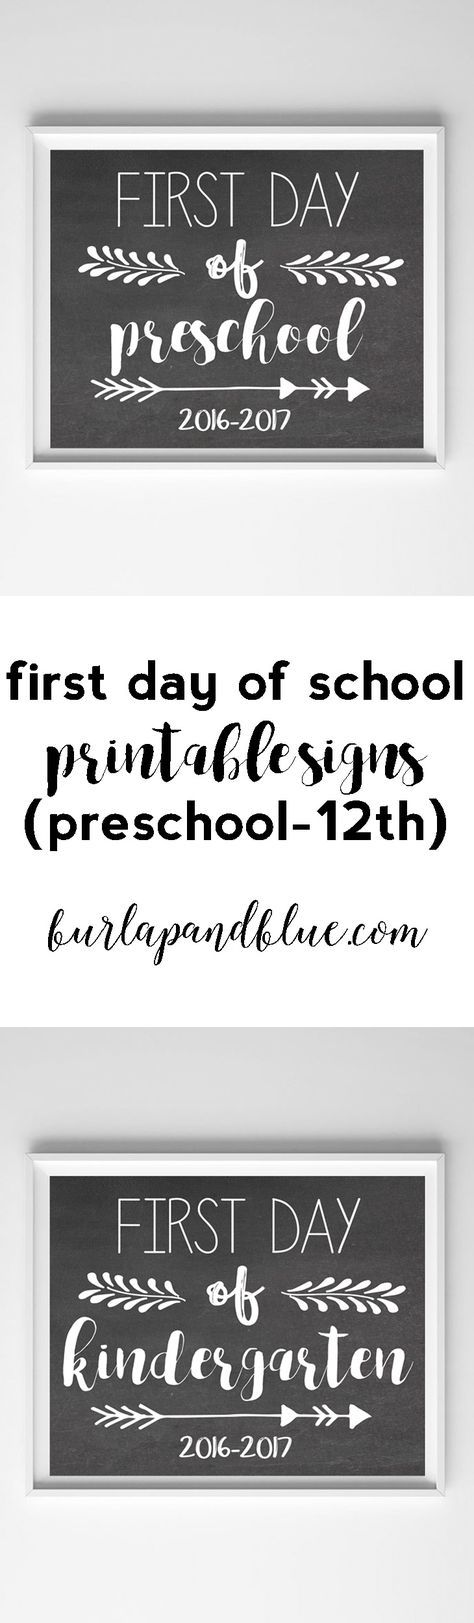 First Day of School Signs {Free Printables}